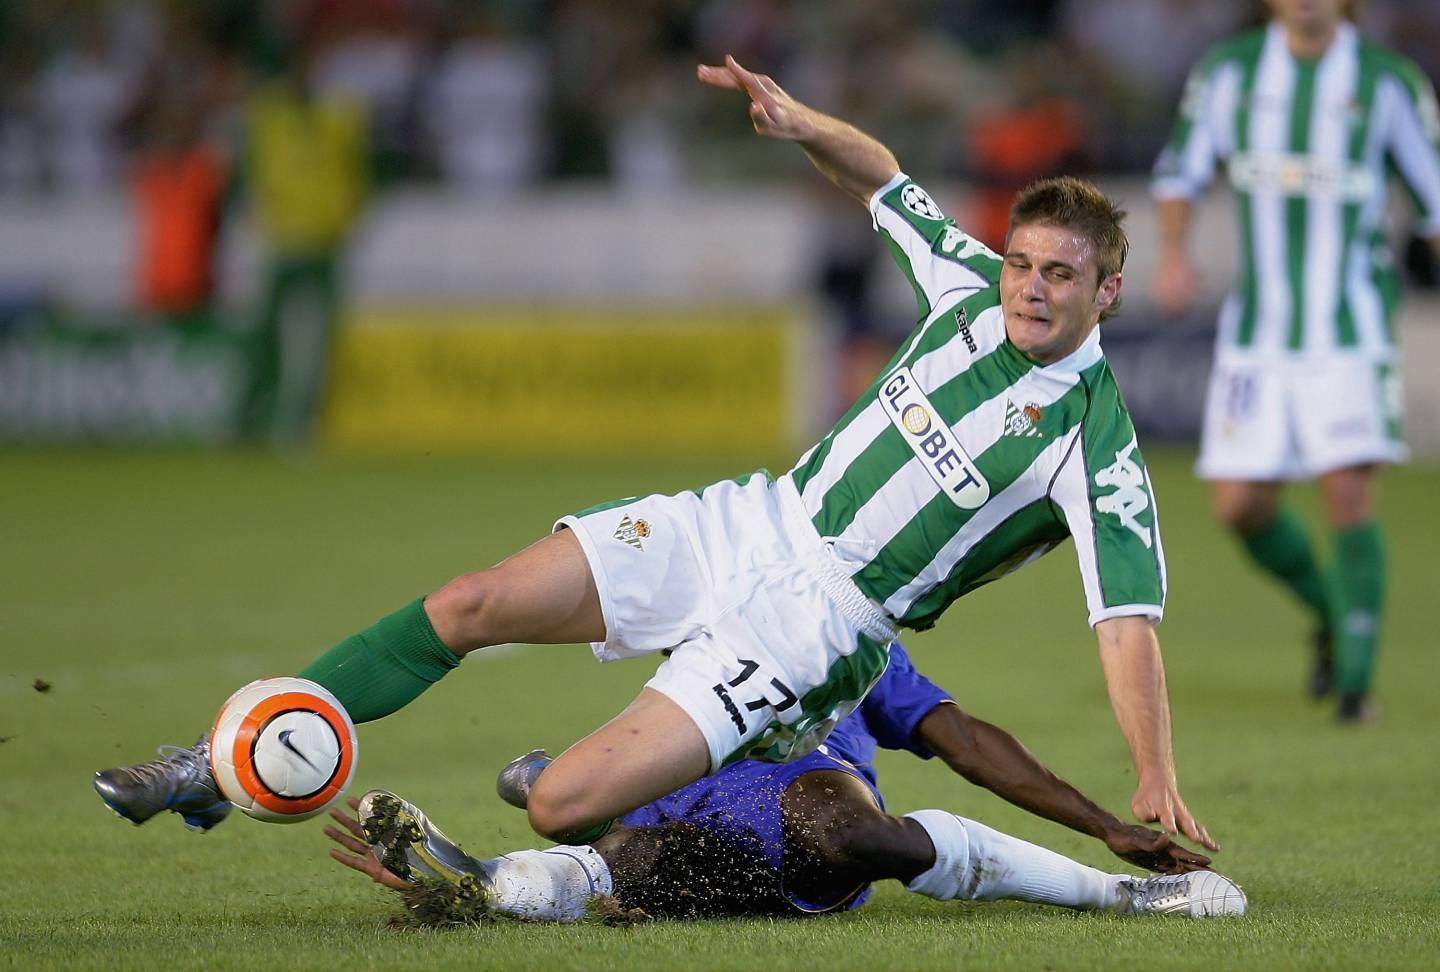 Joaquin of Betis is tackled by Claude Makelele of Chelsea.